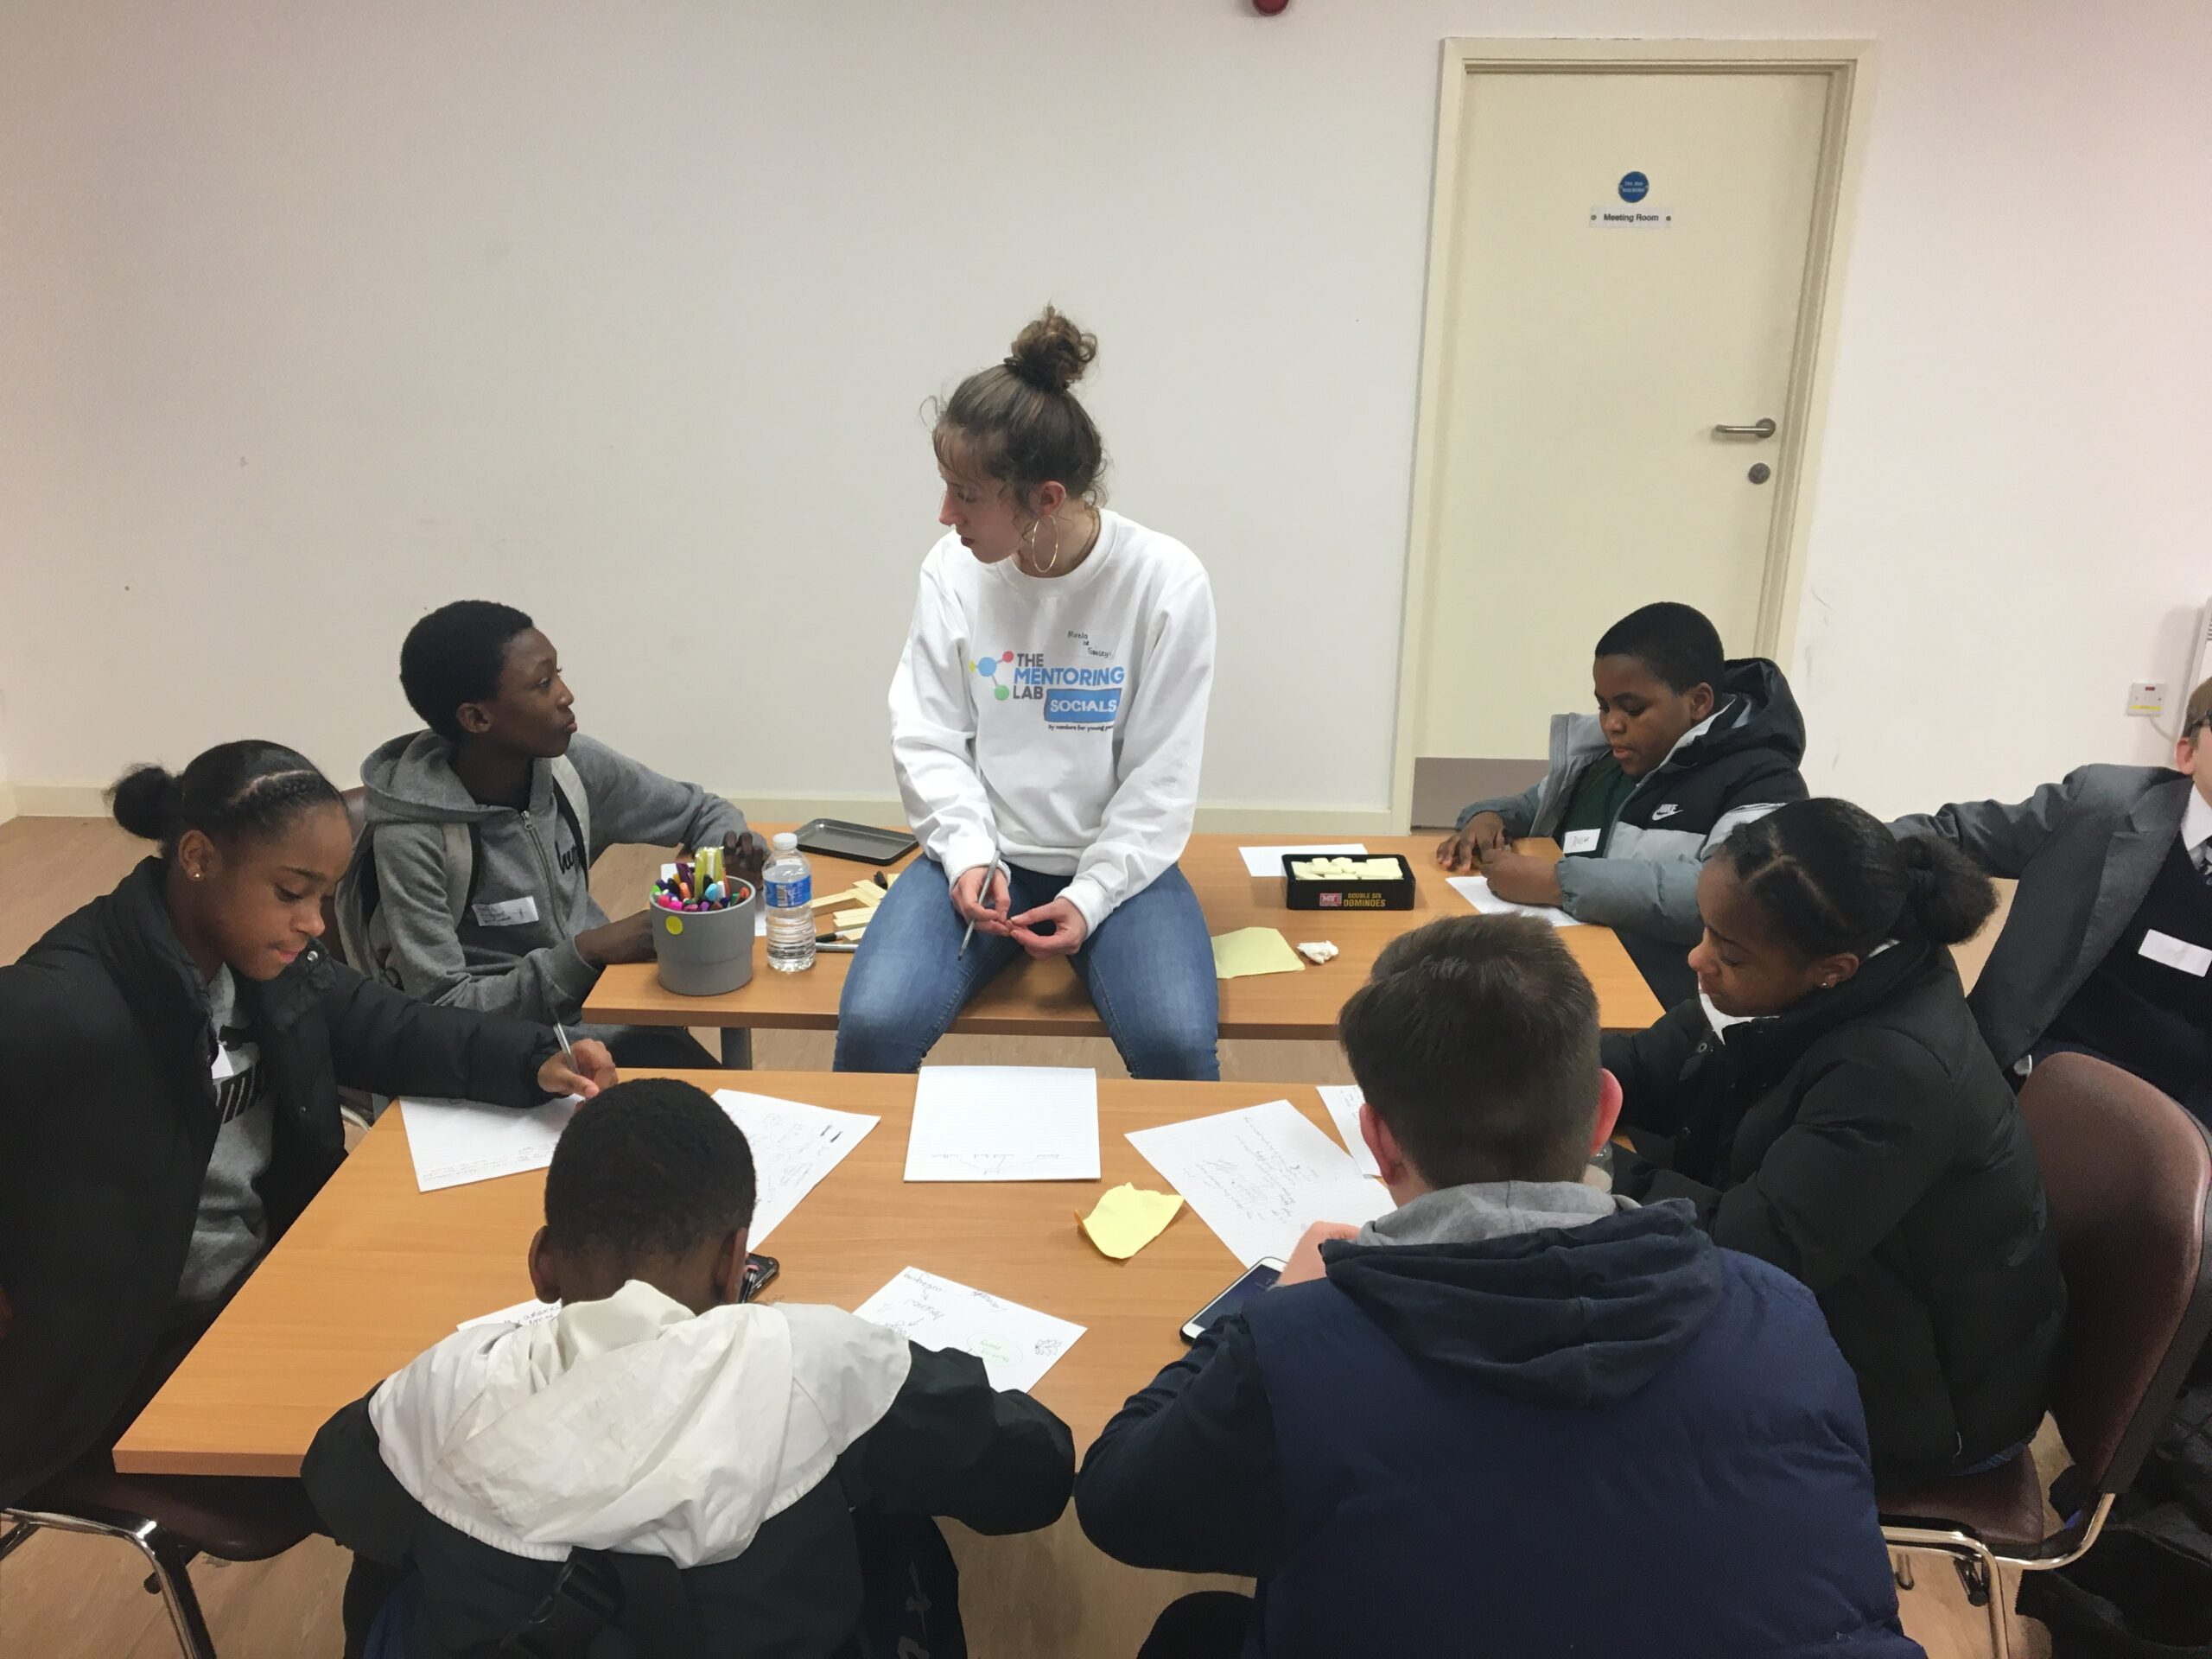 IPI teams up with The Mentoring Lab to help young people break into the tech sector